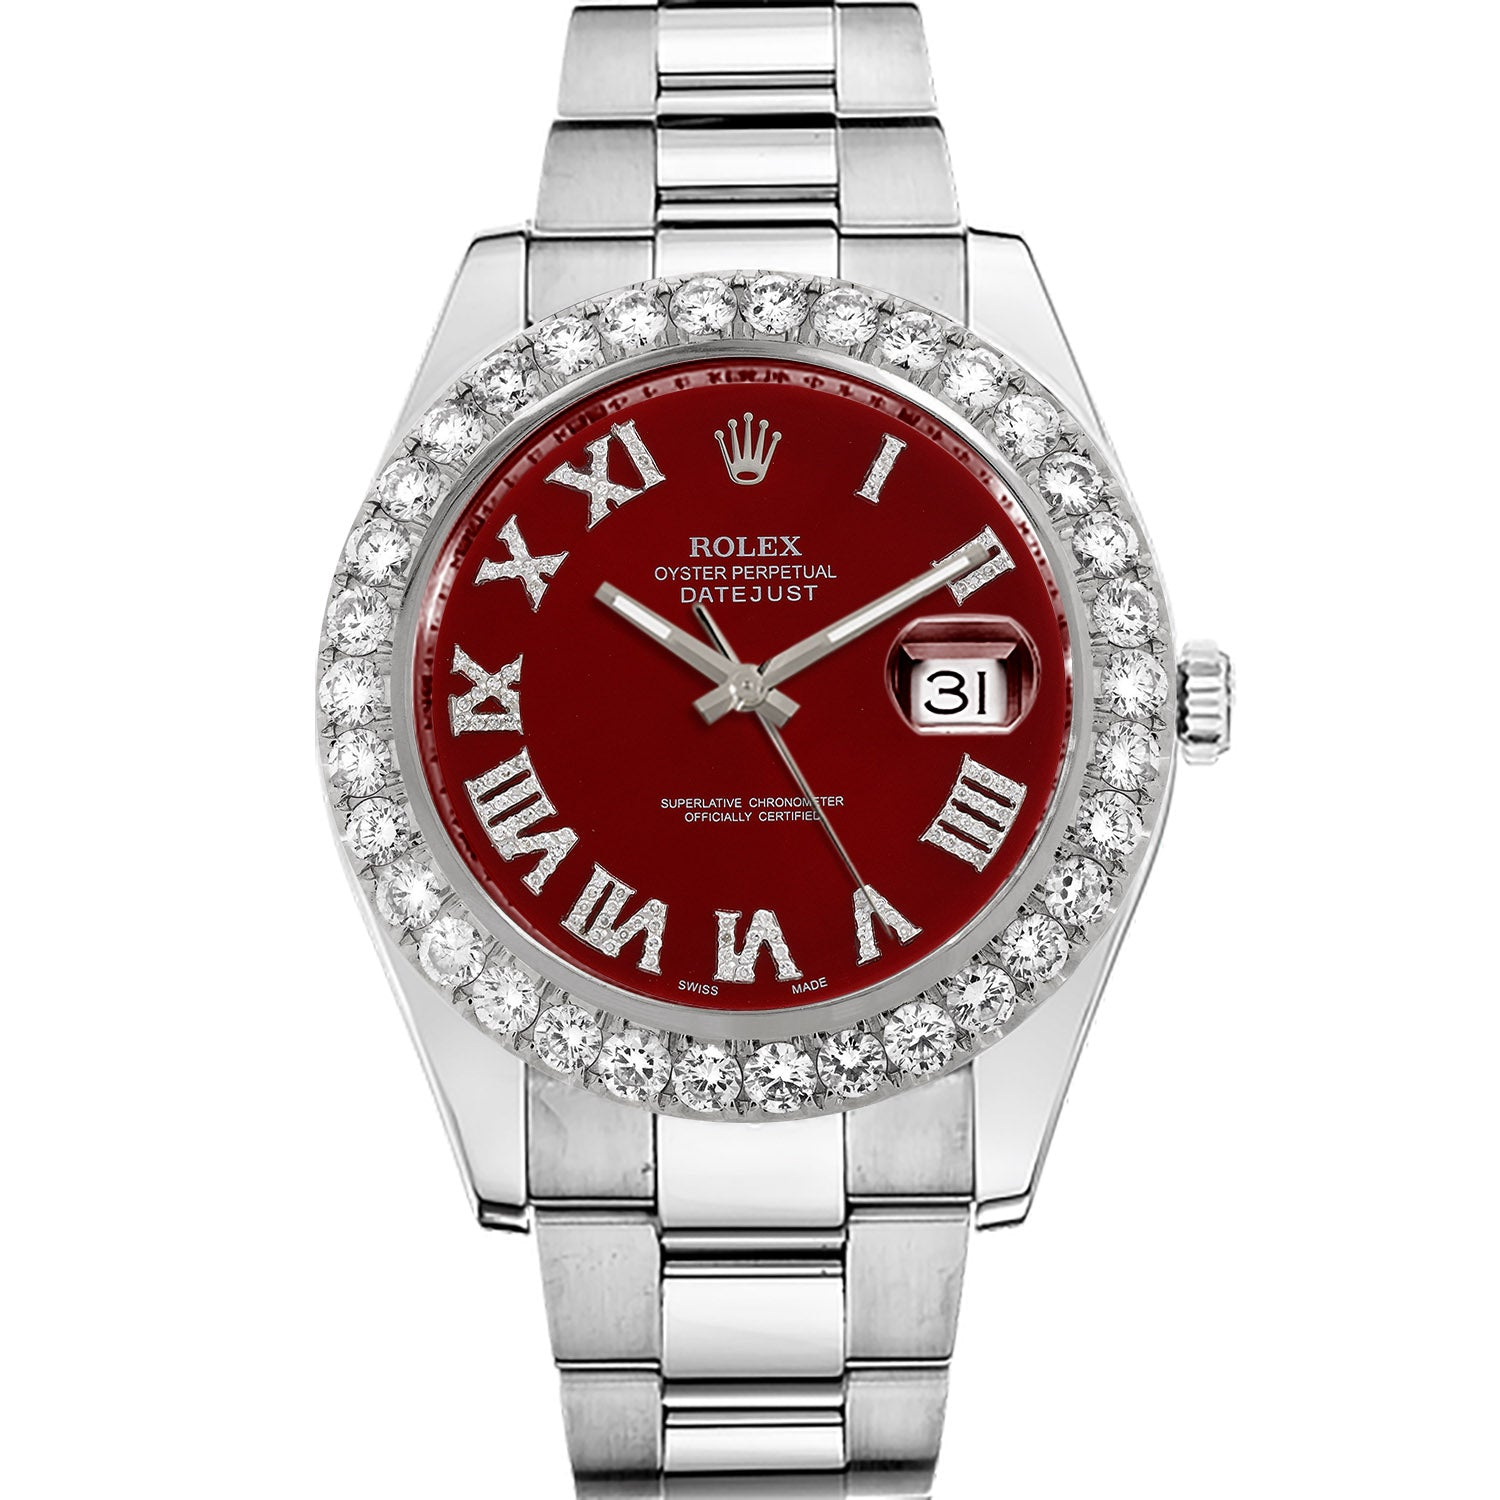 Diamond Rolex Datejust II 41 Stainless Steel Red Roman Watch